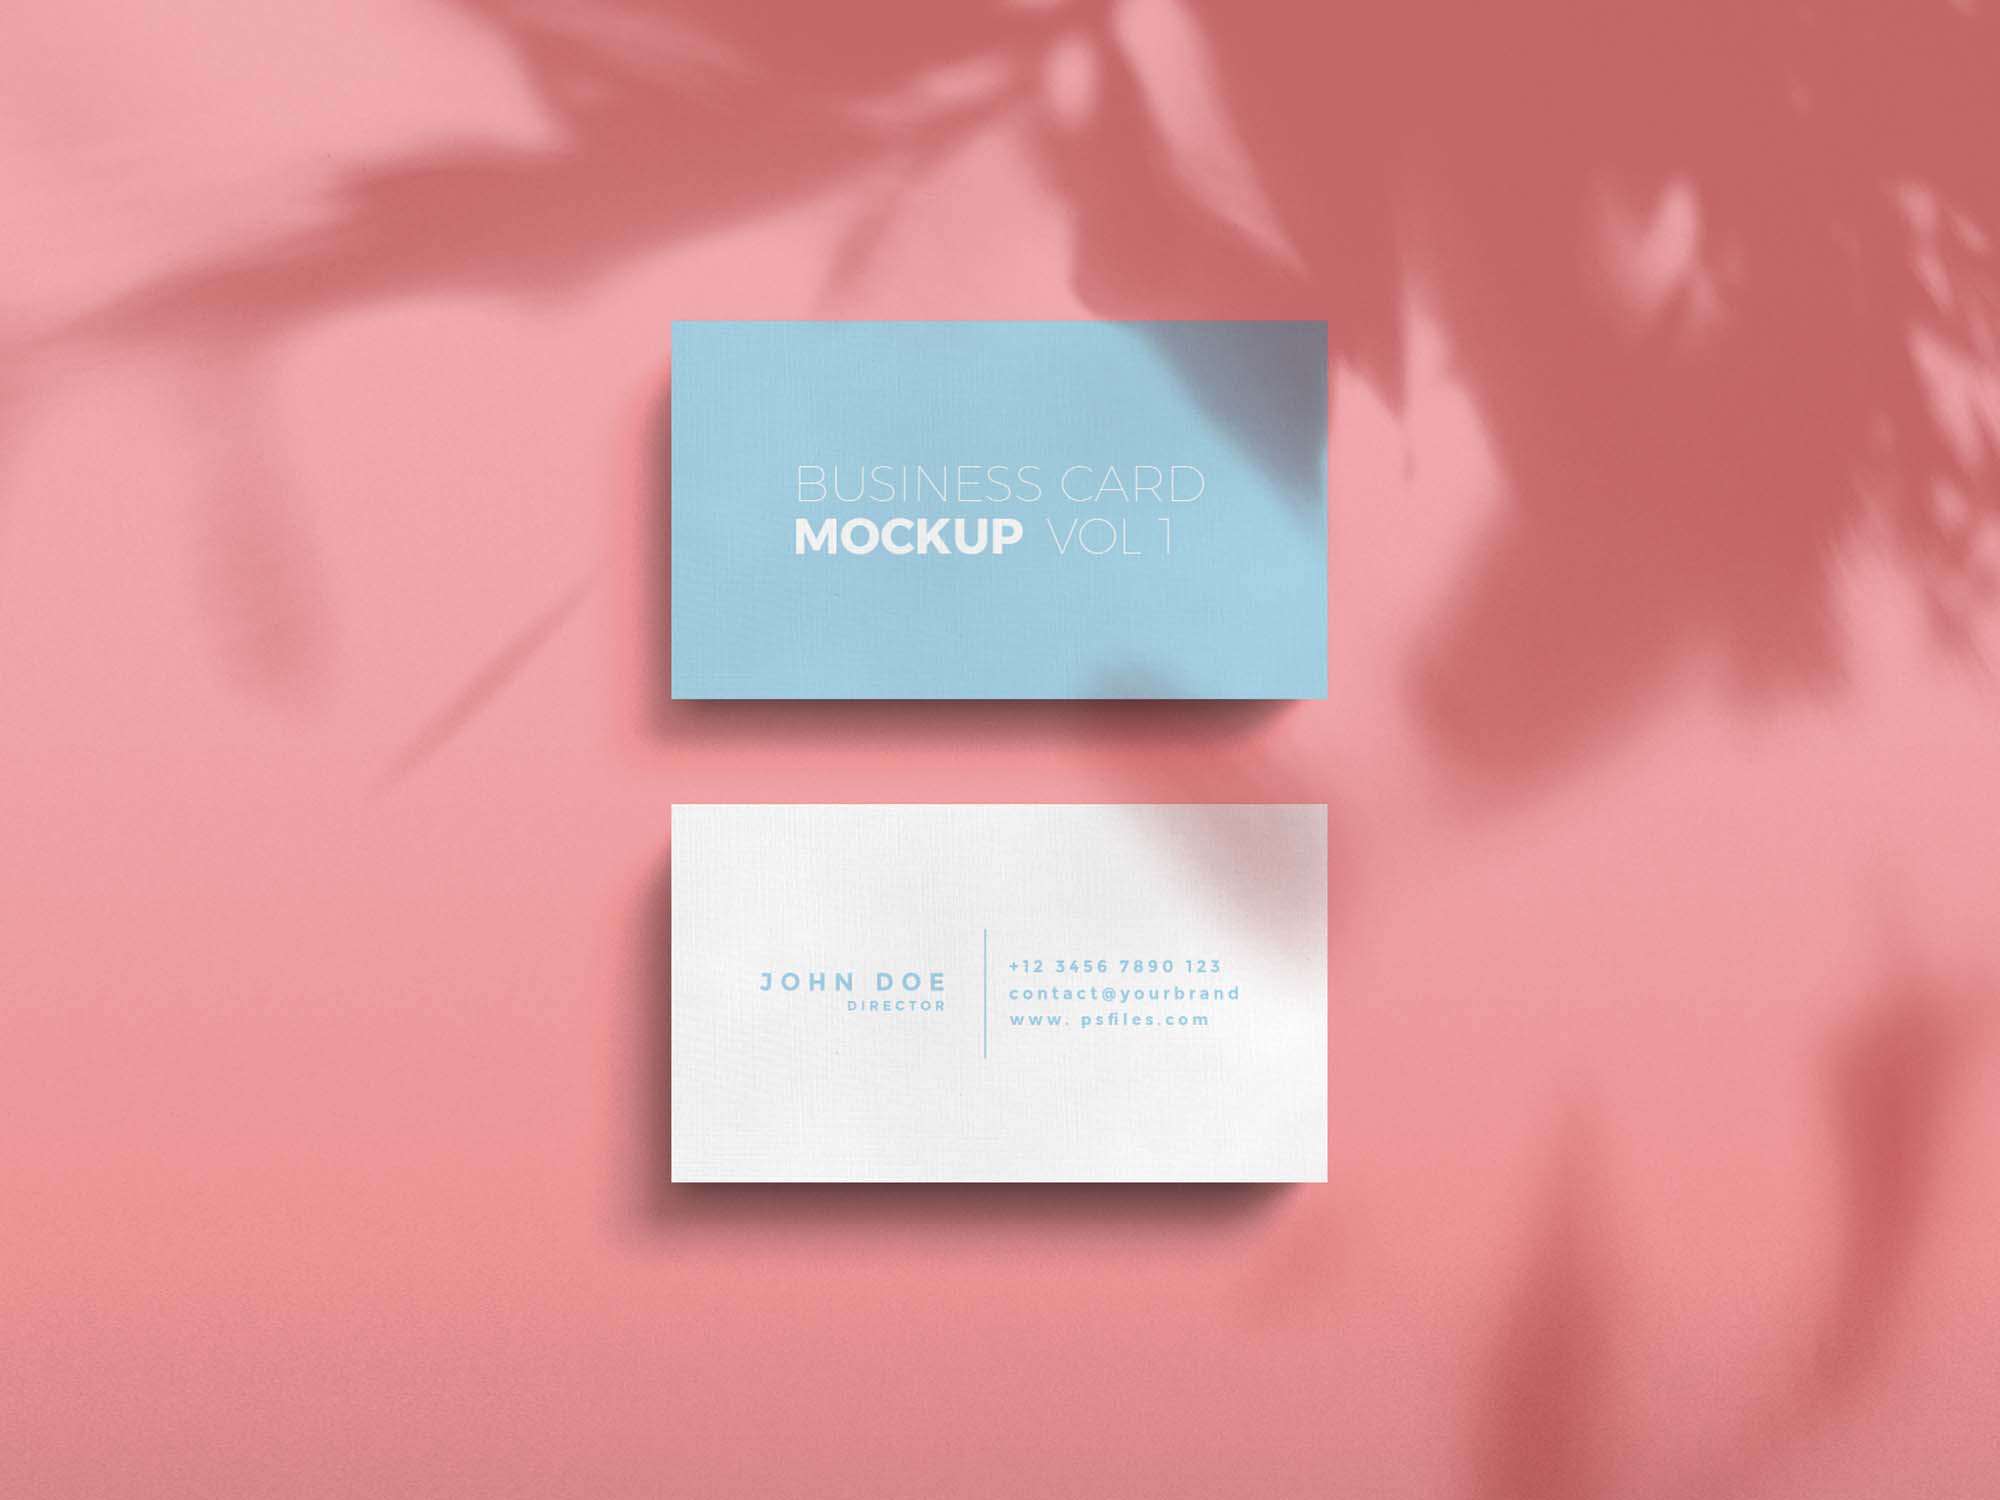 Standard Business Card Mockup